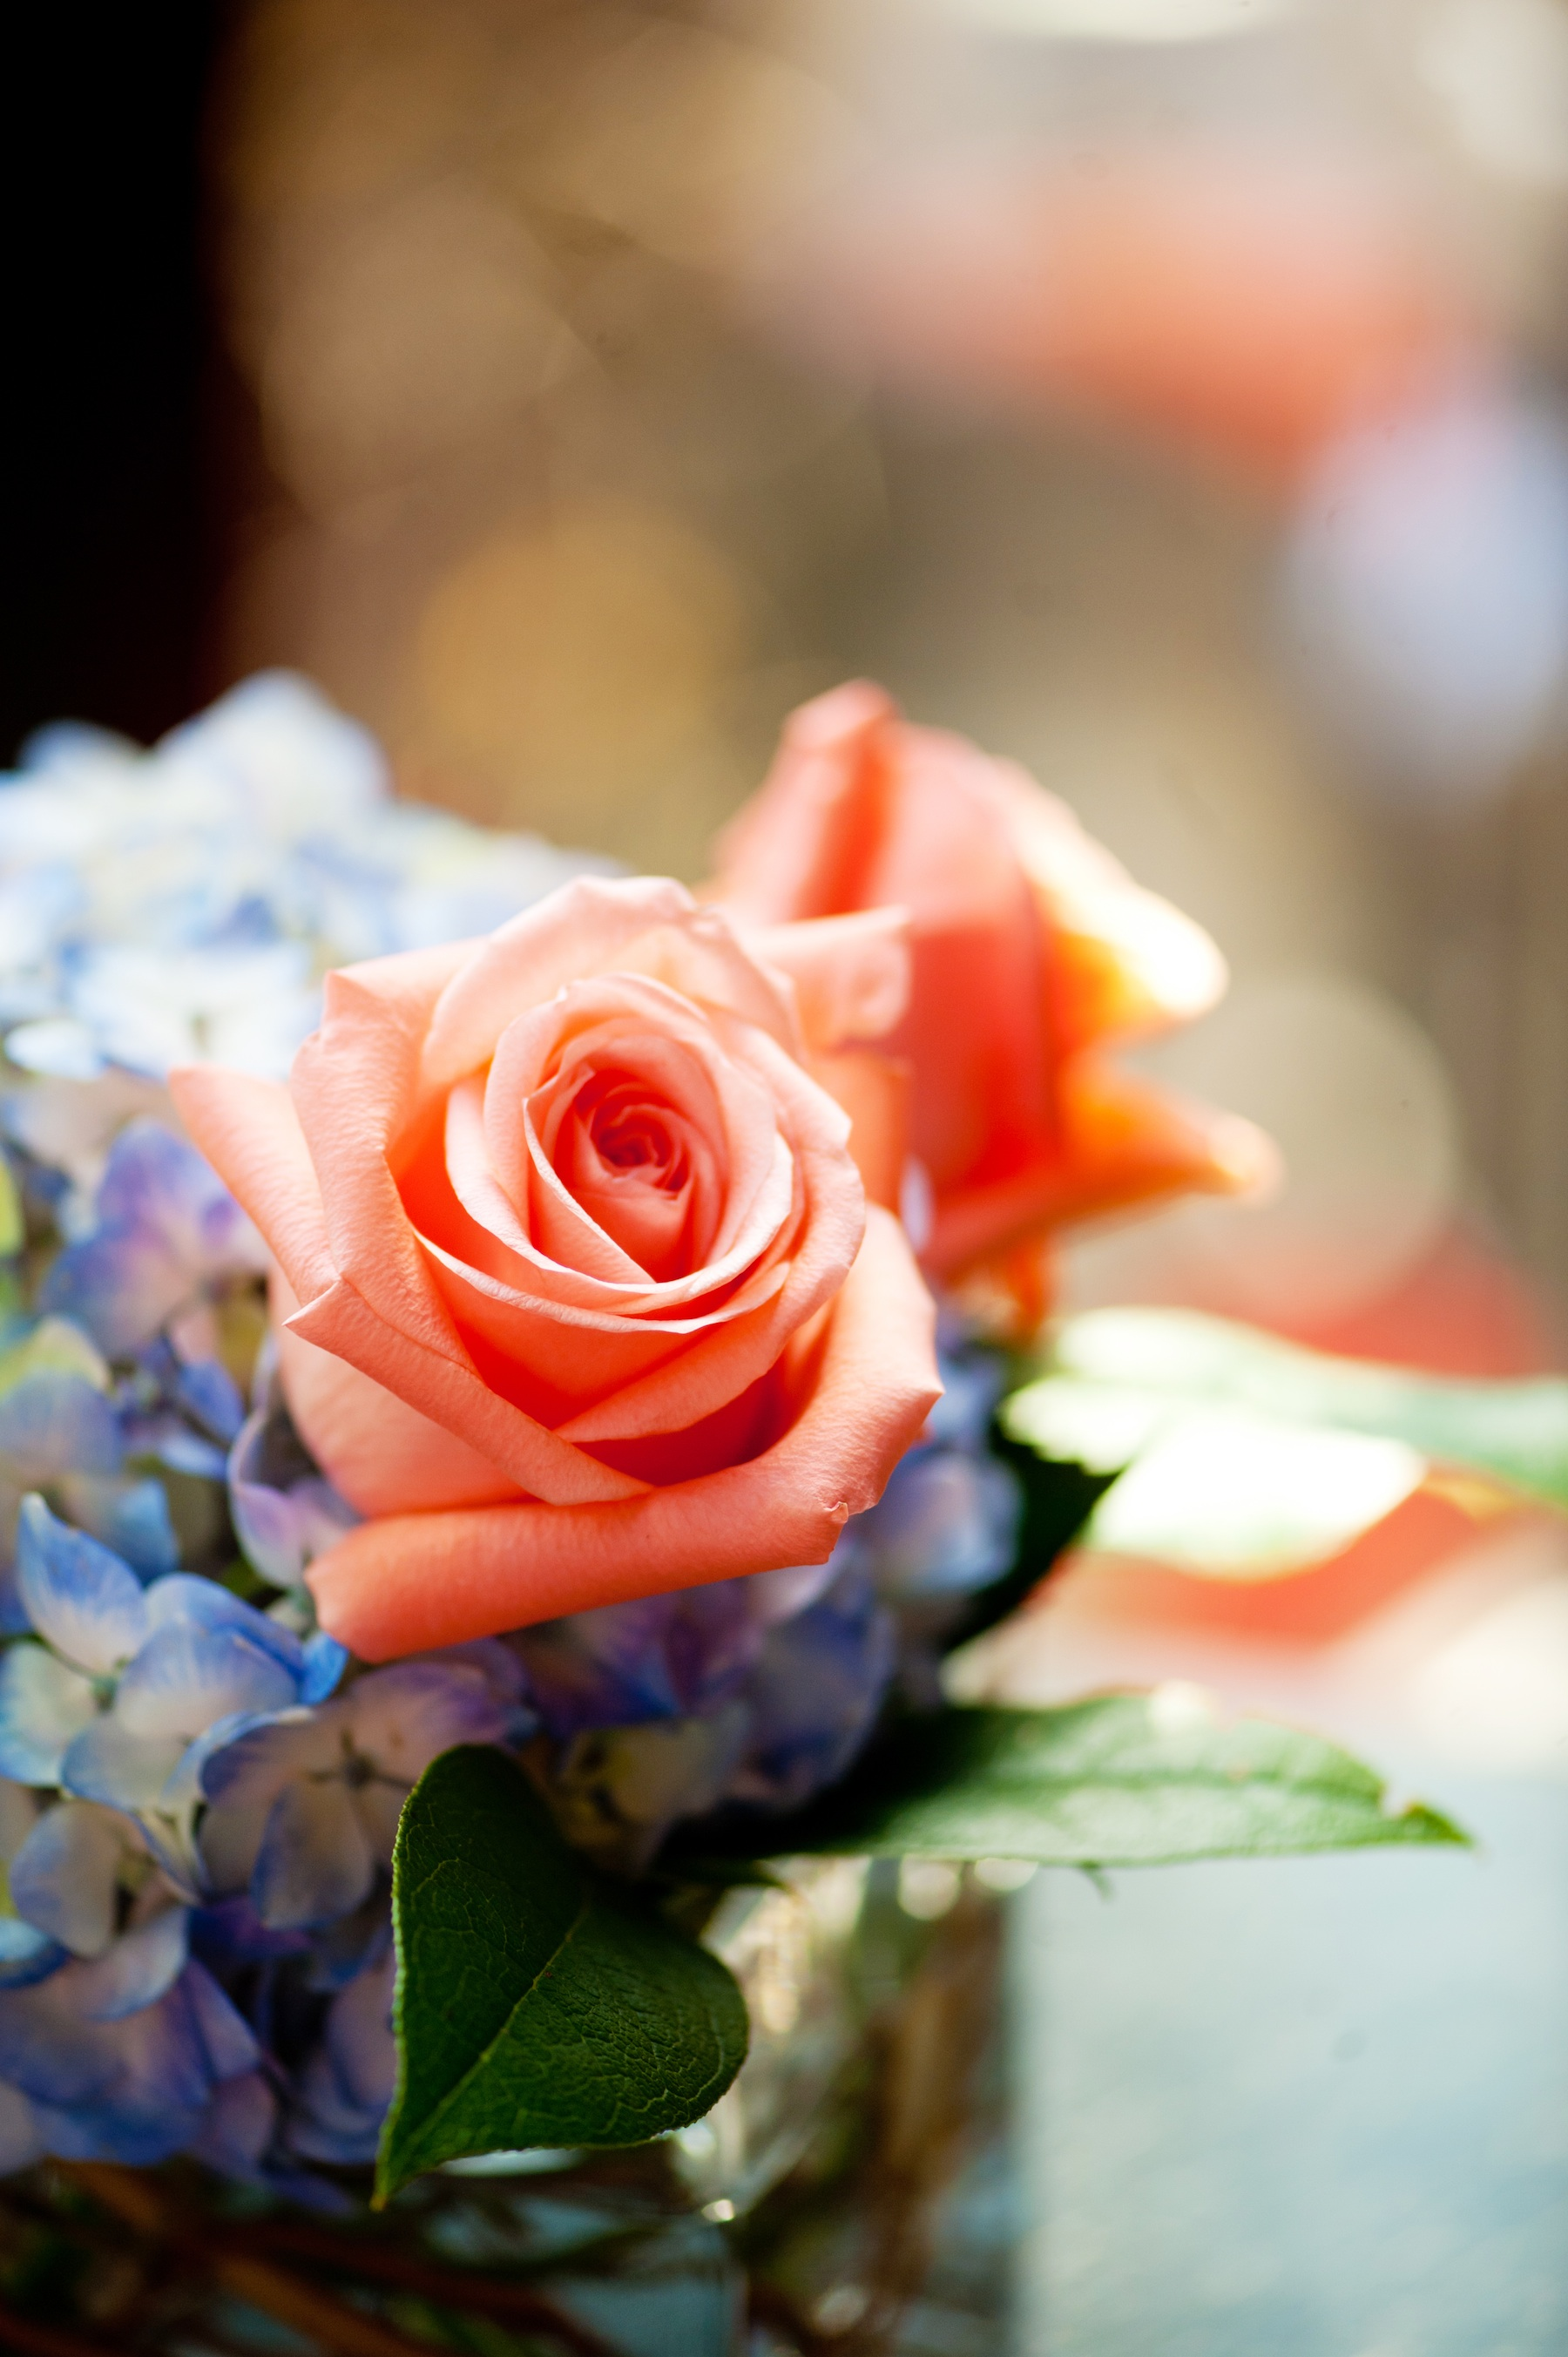 Elegant-real-wedding-with-simple-diy-details-centerpieces-coral-roses.original